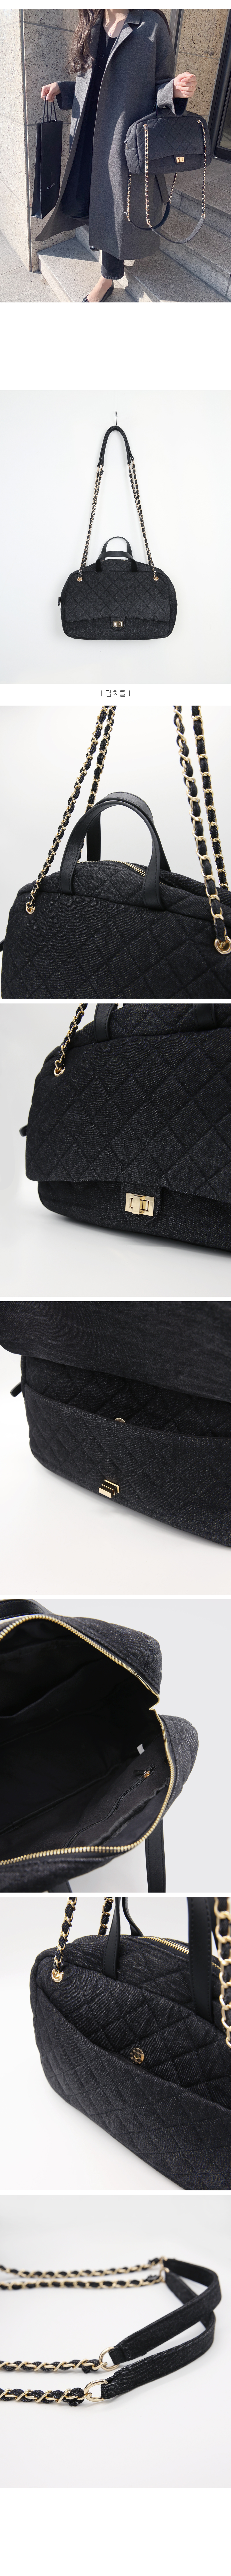 Big quilted chain bag